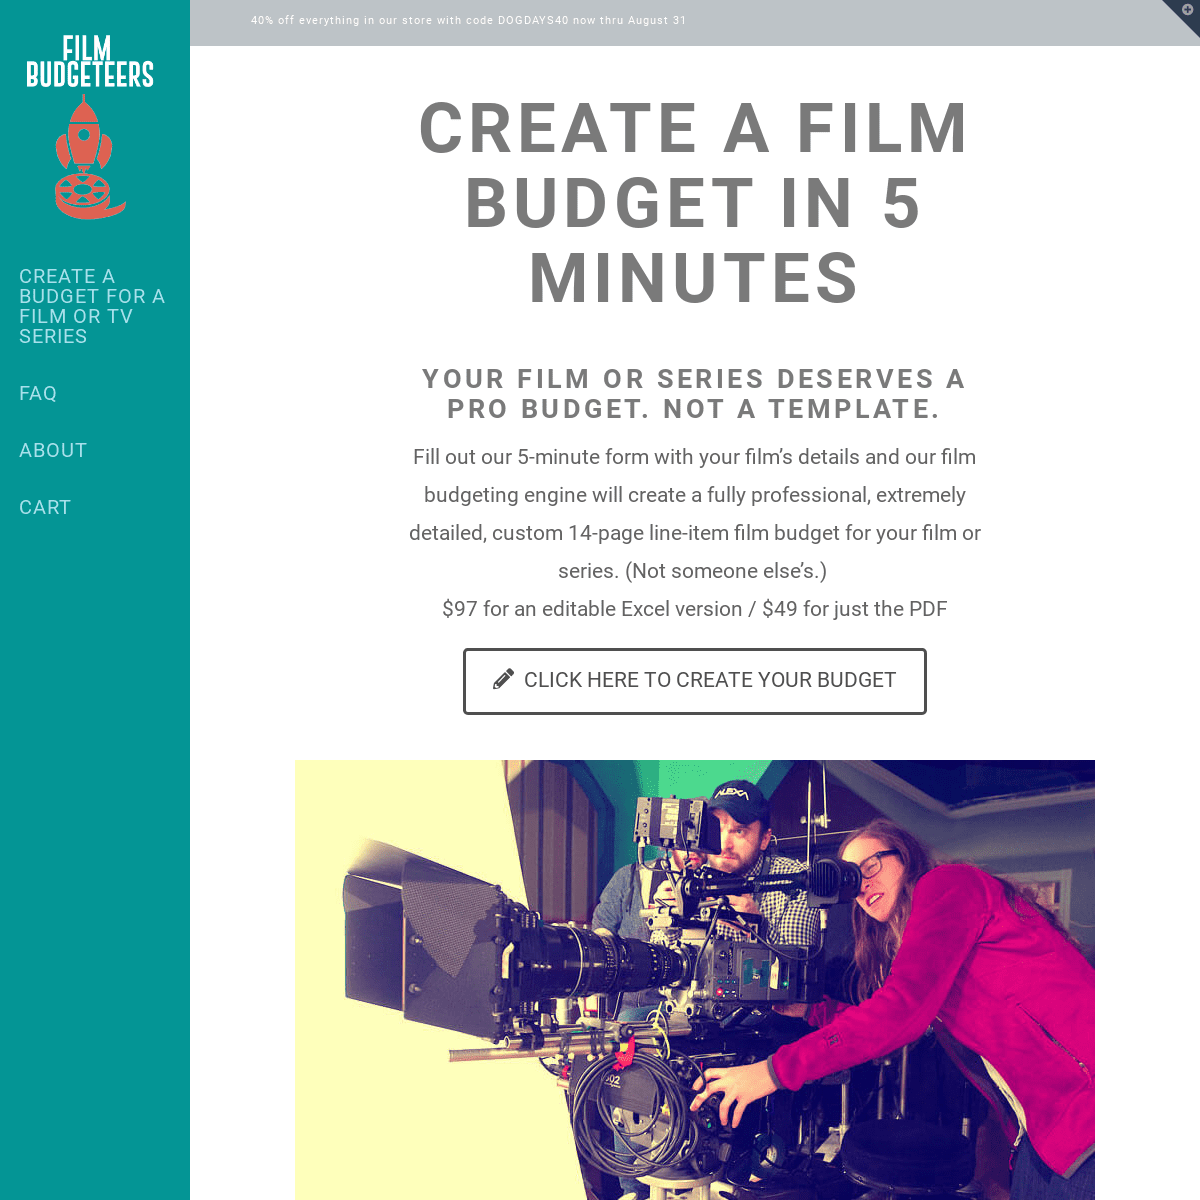 Film Budgeteers - Create a film budget for your film or series in 5 minutes